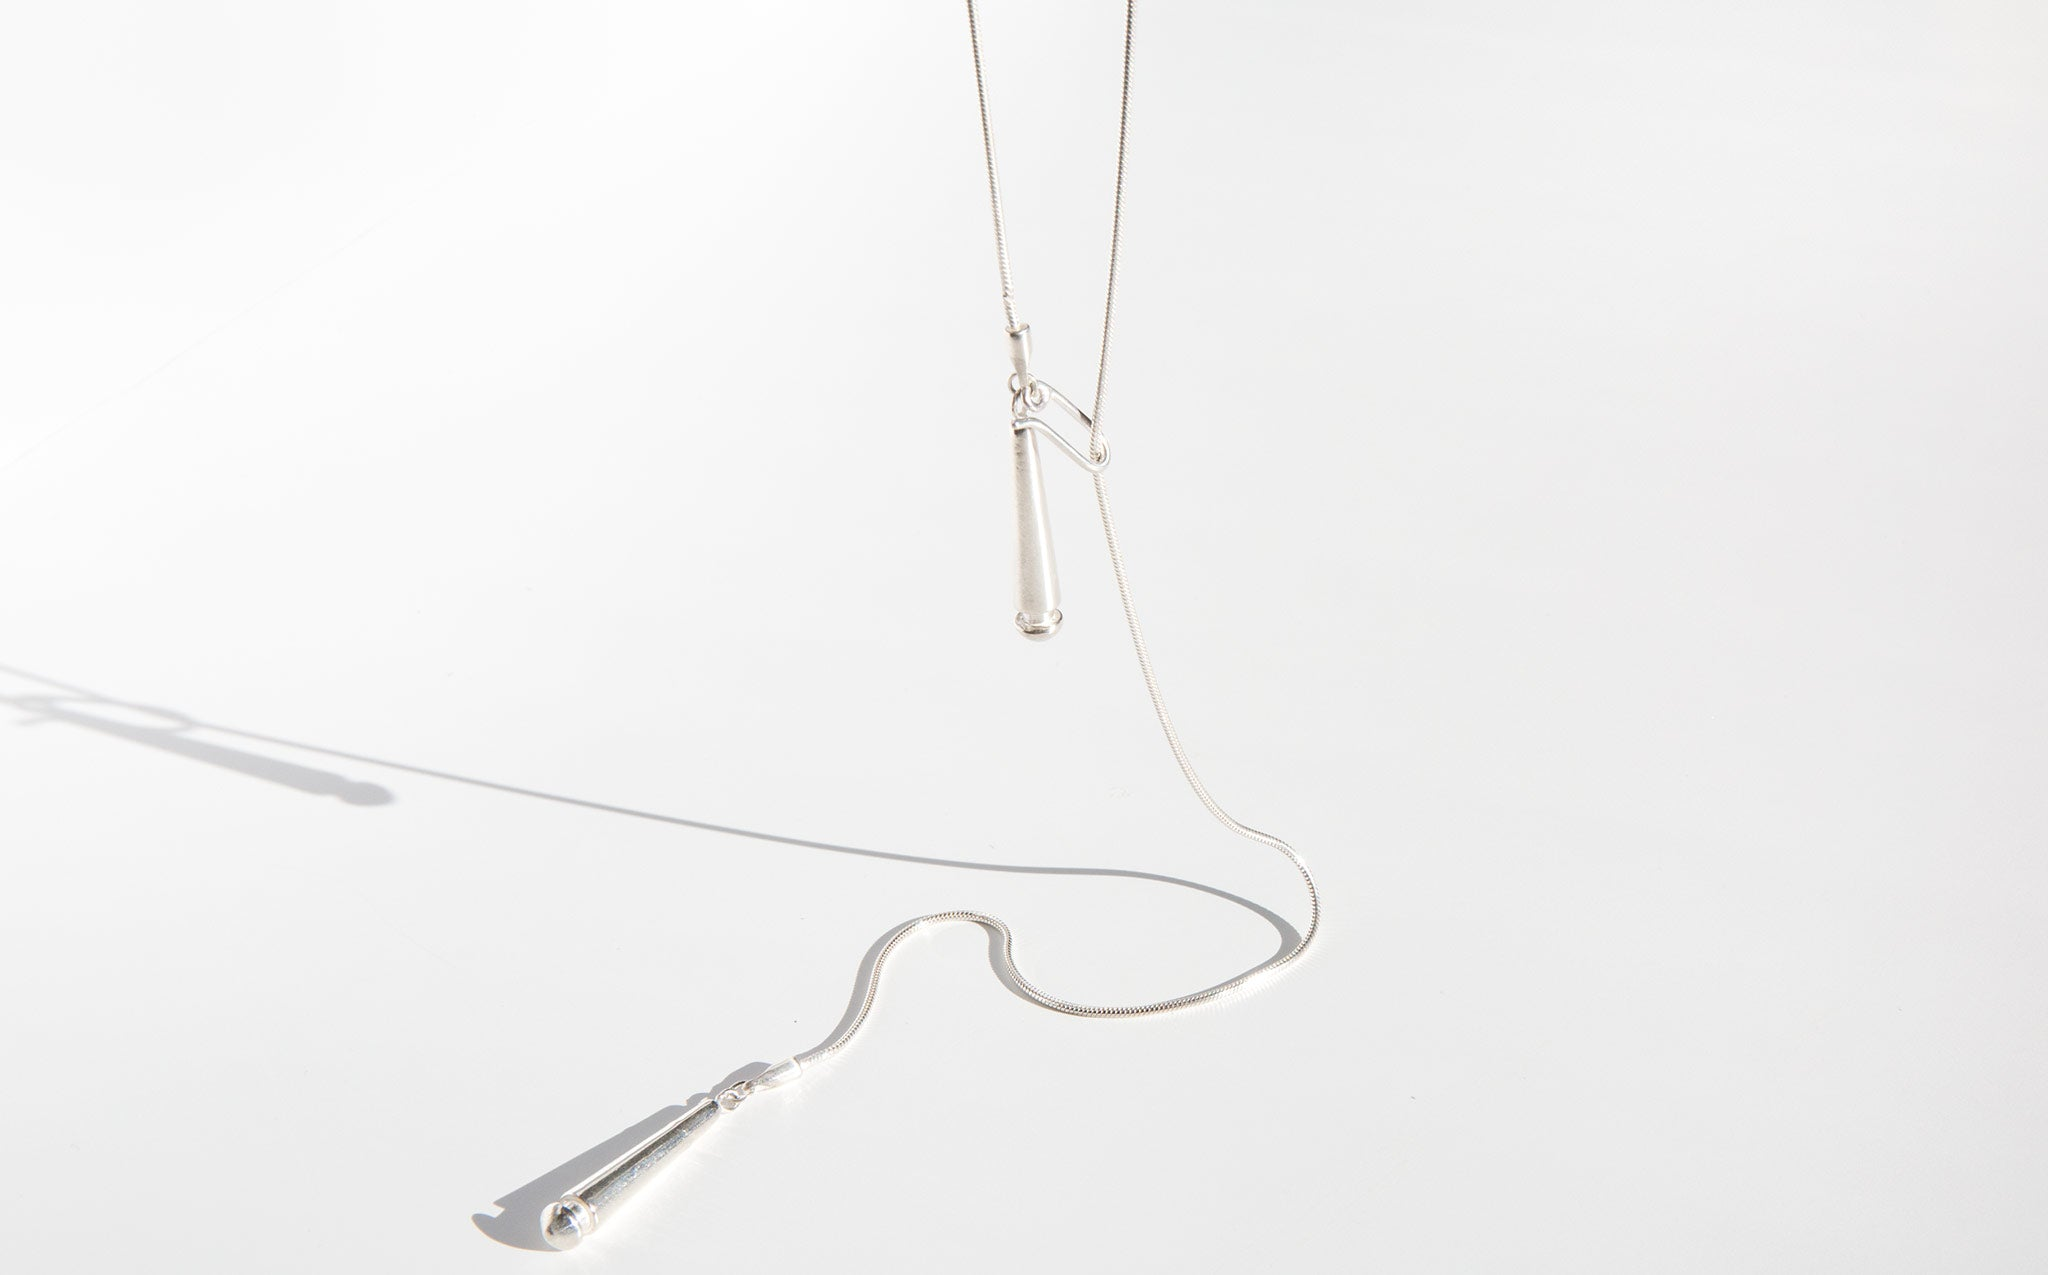 Another Feather Drop Lariat Necklace